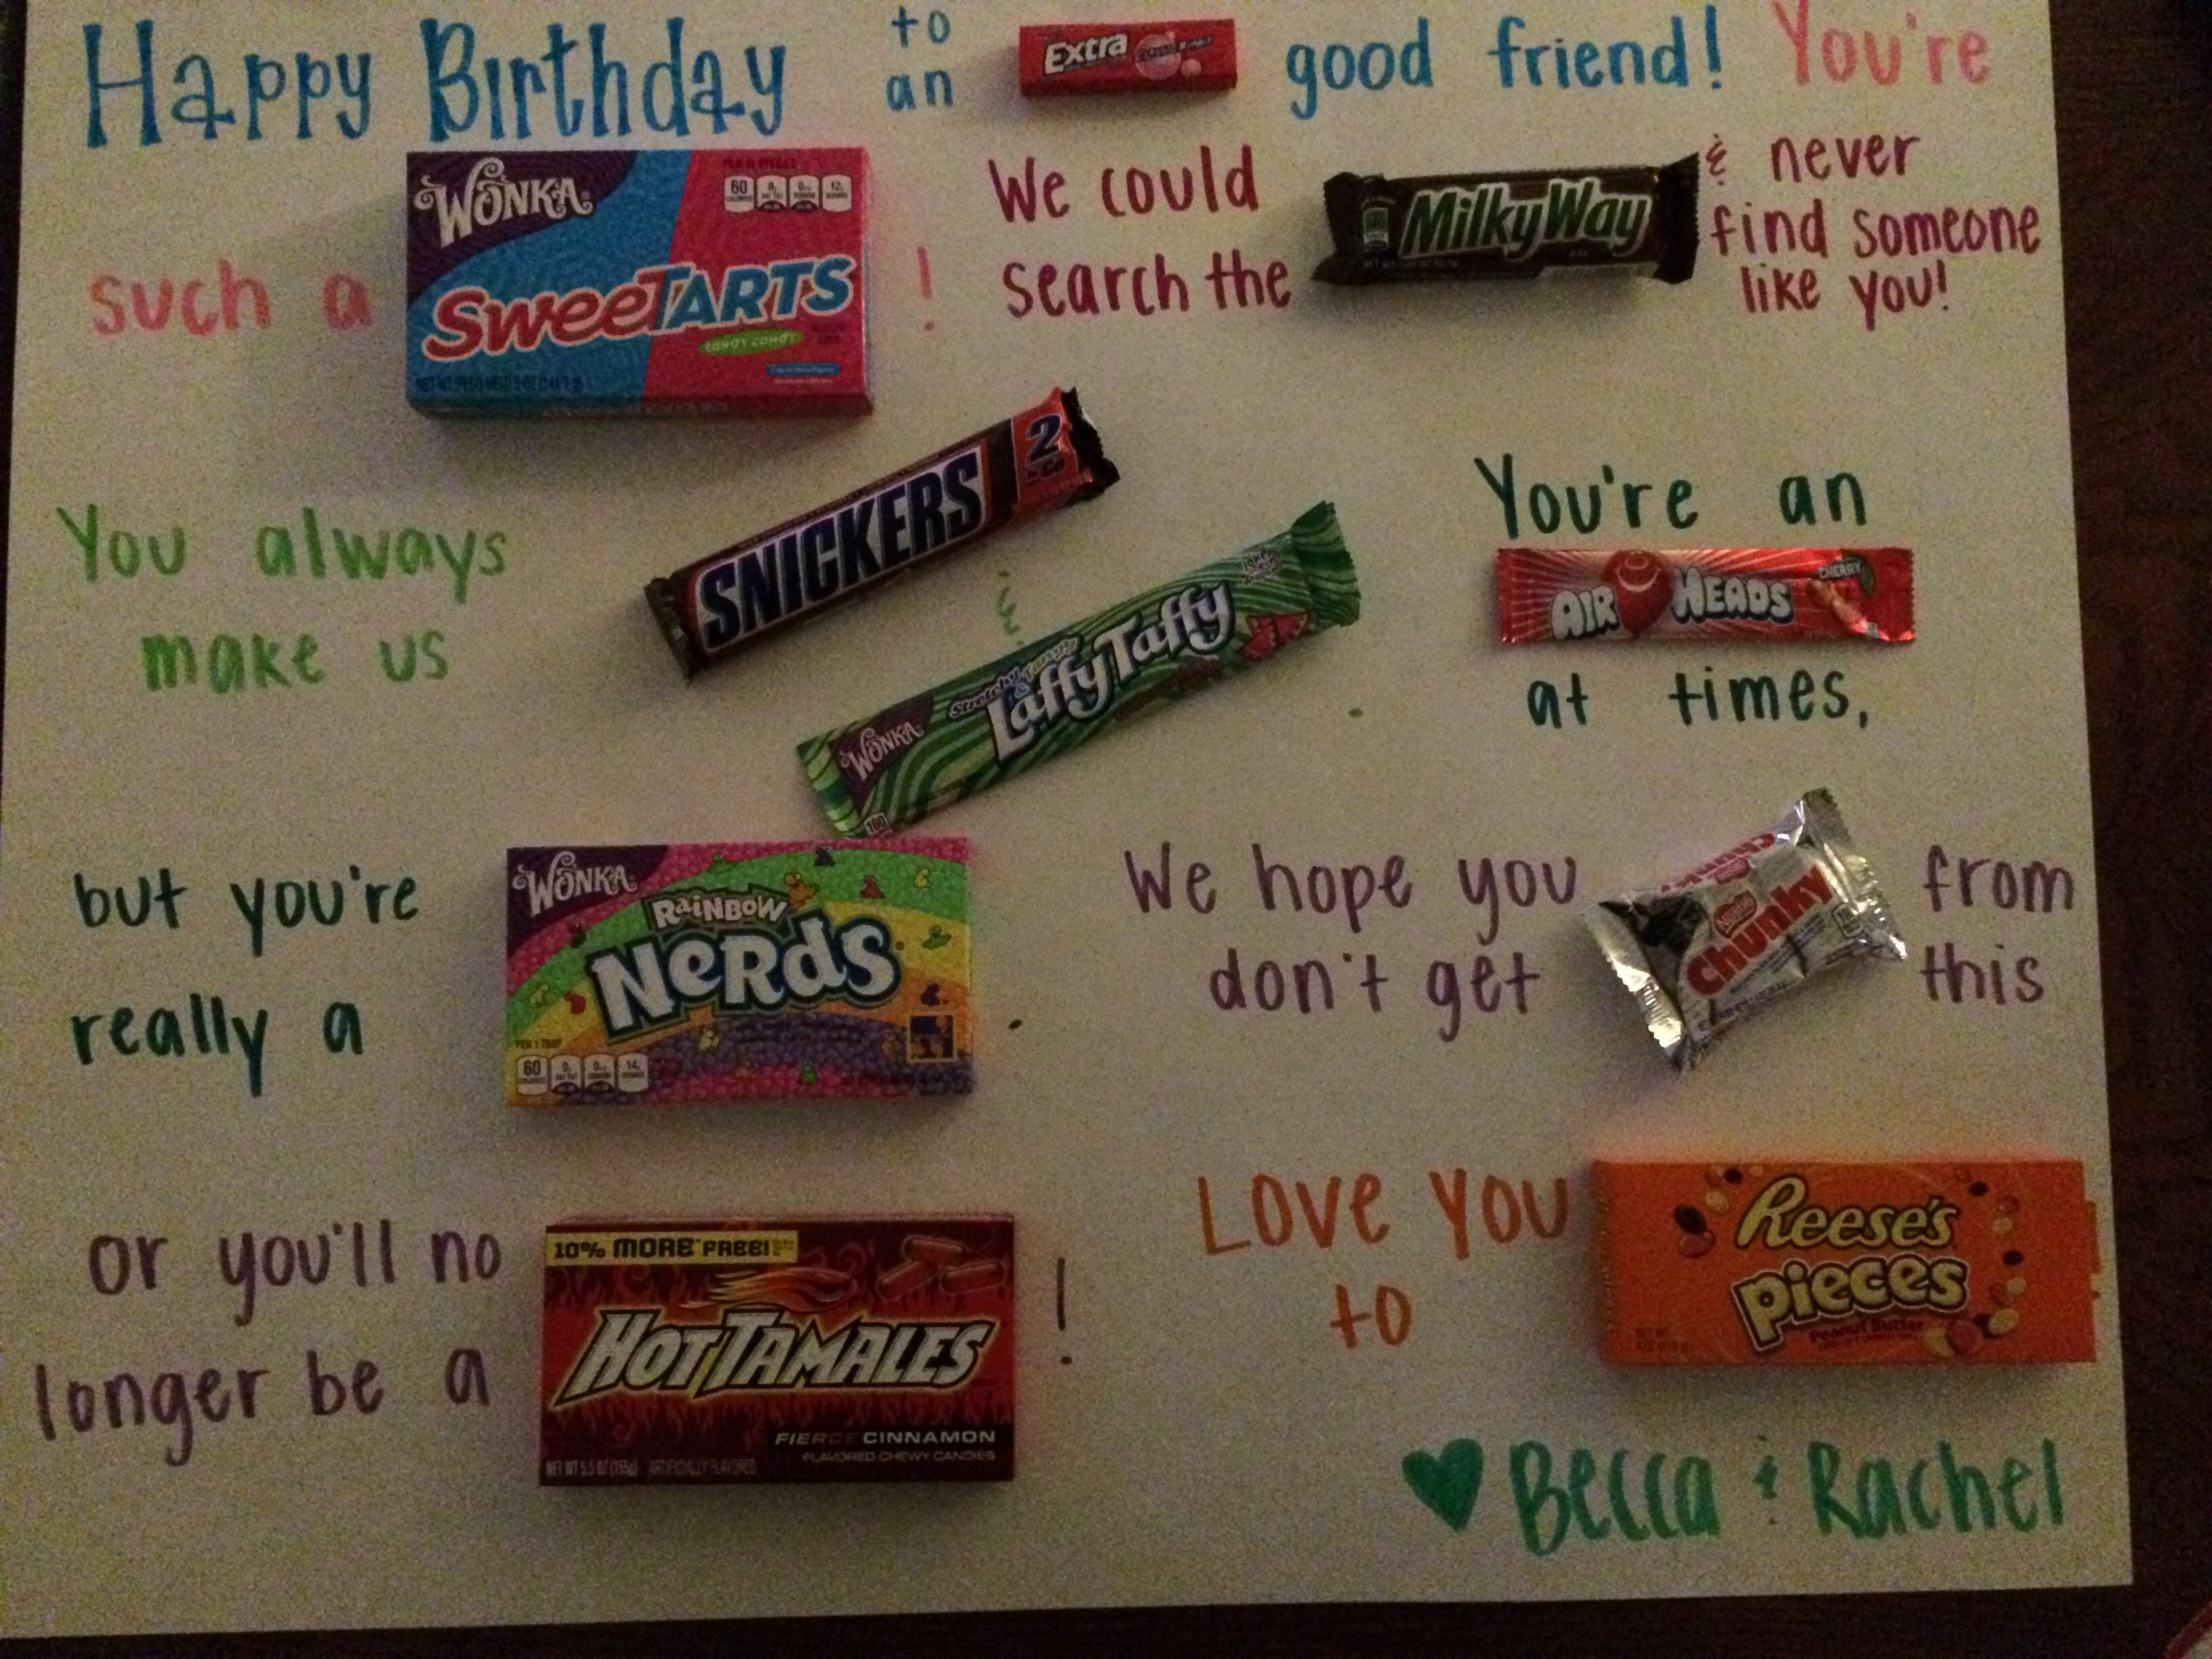 Birthday Poster With Clever Candy Sayings! Pinterest